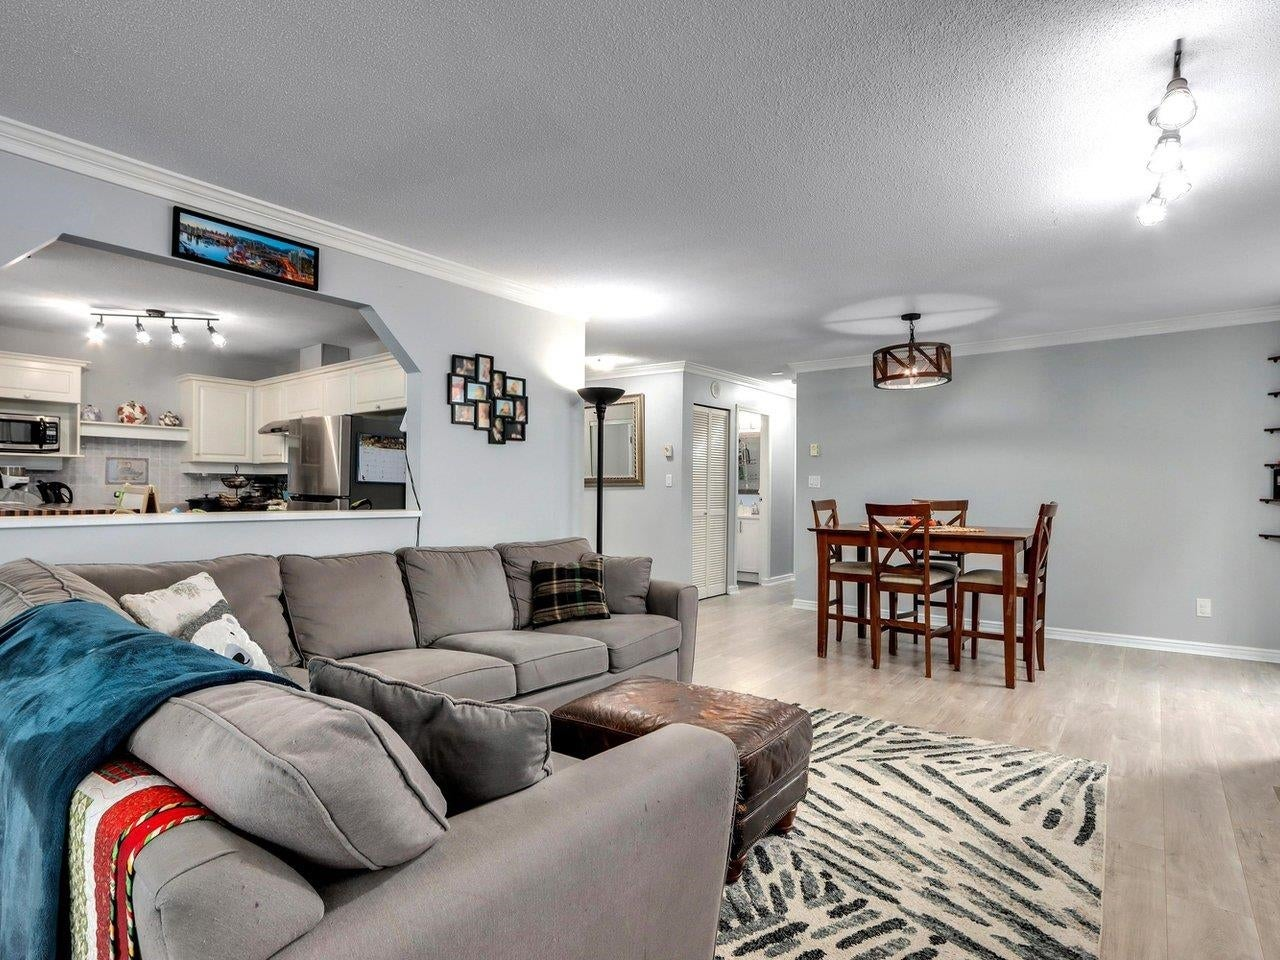 302 412 TWELFTH STREET - Uptown NW Apartment/Condo for sale, 2 Bedrooms (R2625659) - #5